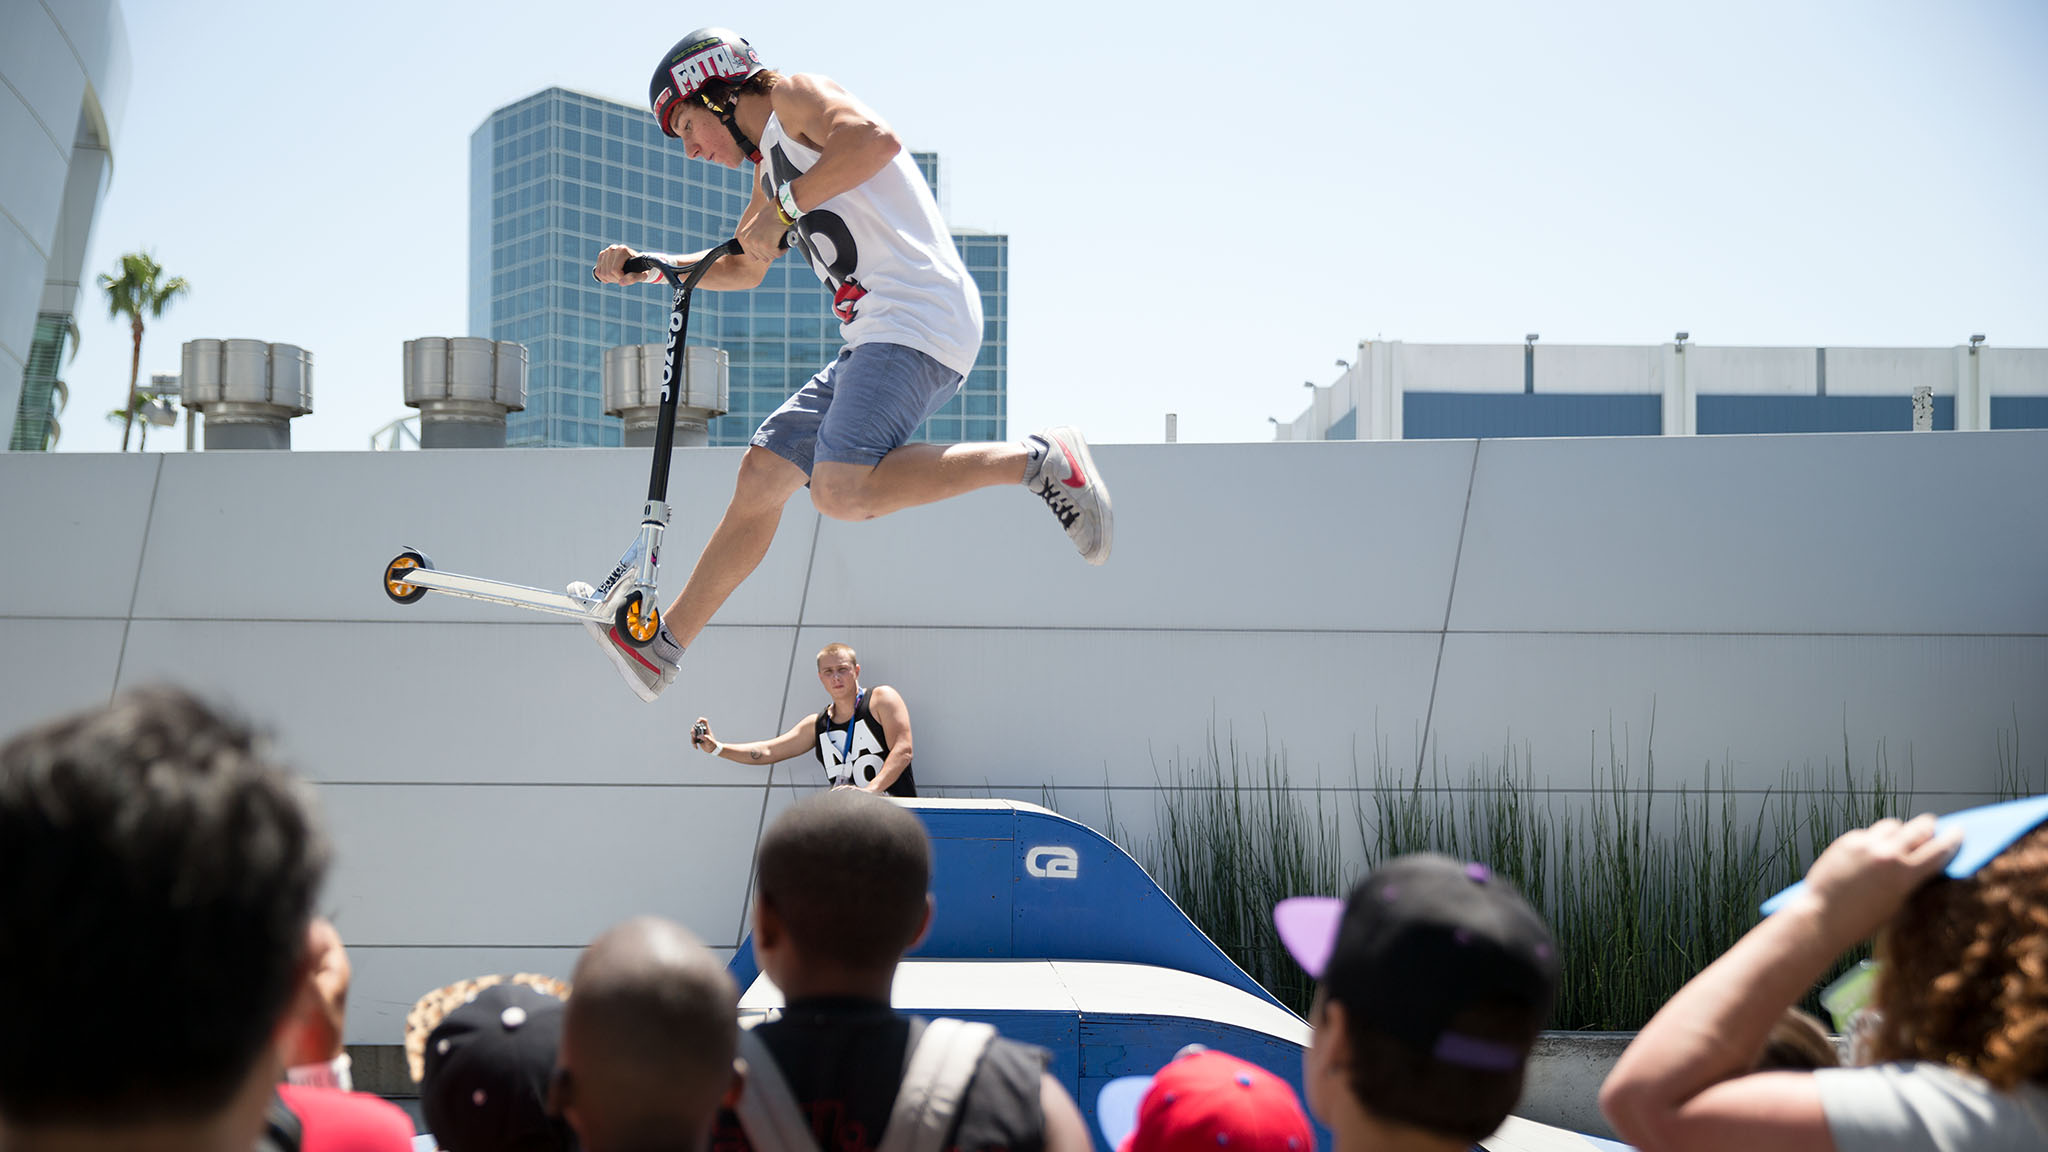 You haven't really gotten the full experience if you haven't attended an X Games event live and had a chance to walk around the X Fest village to take in the sights.